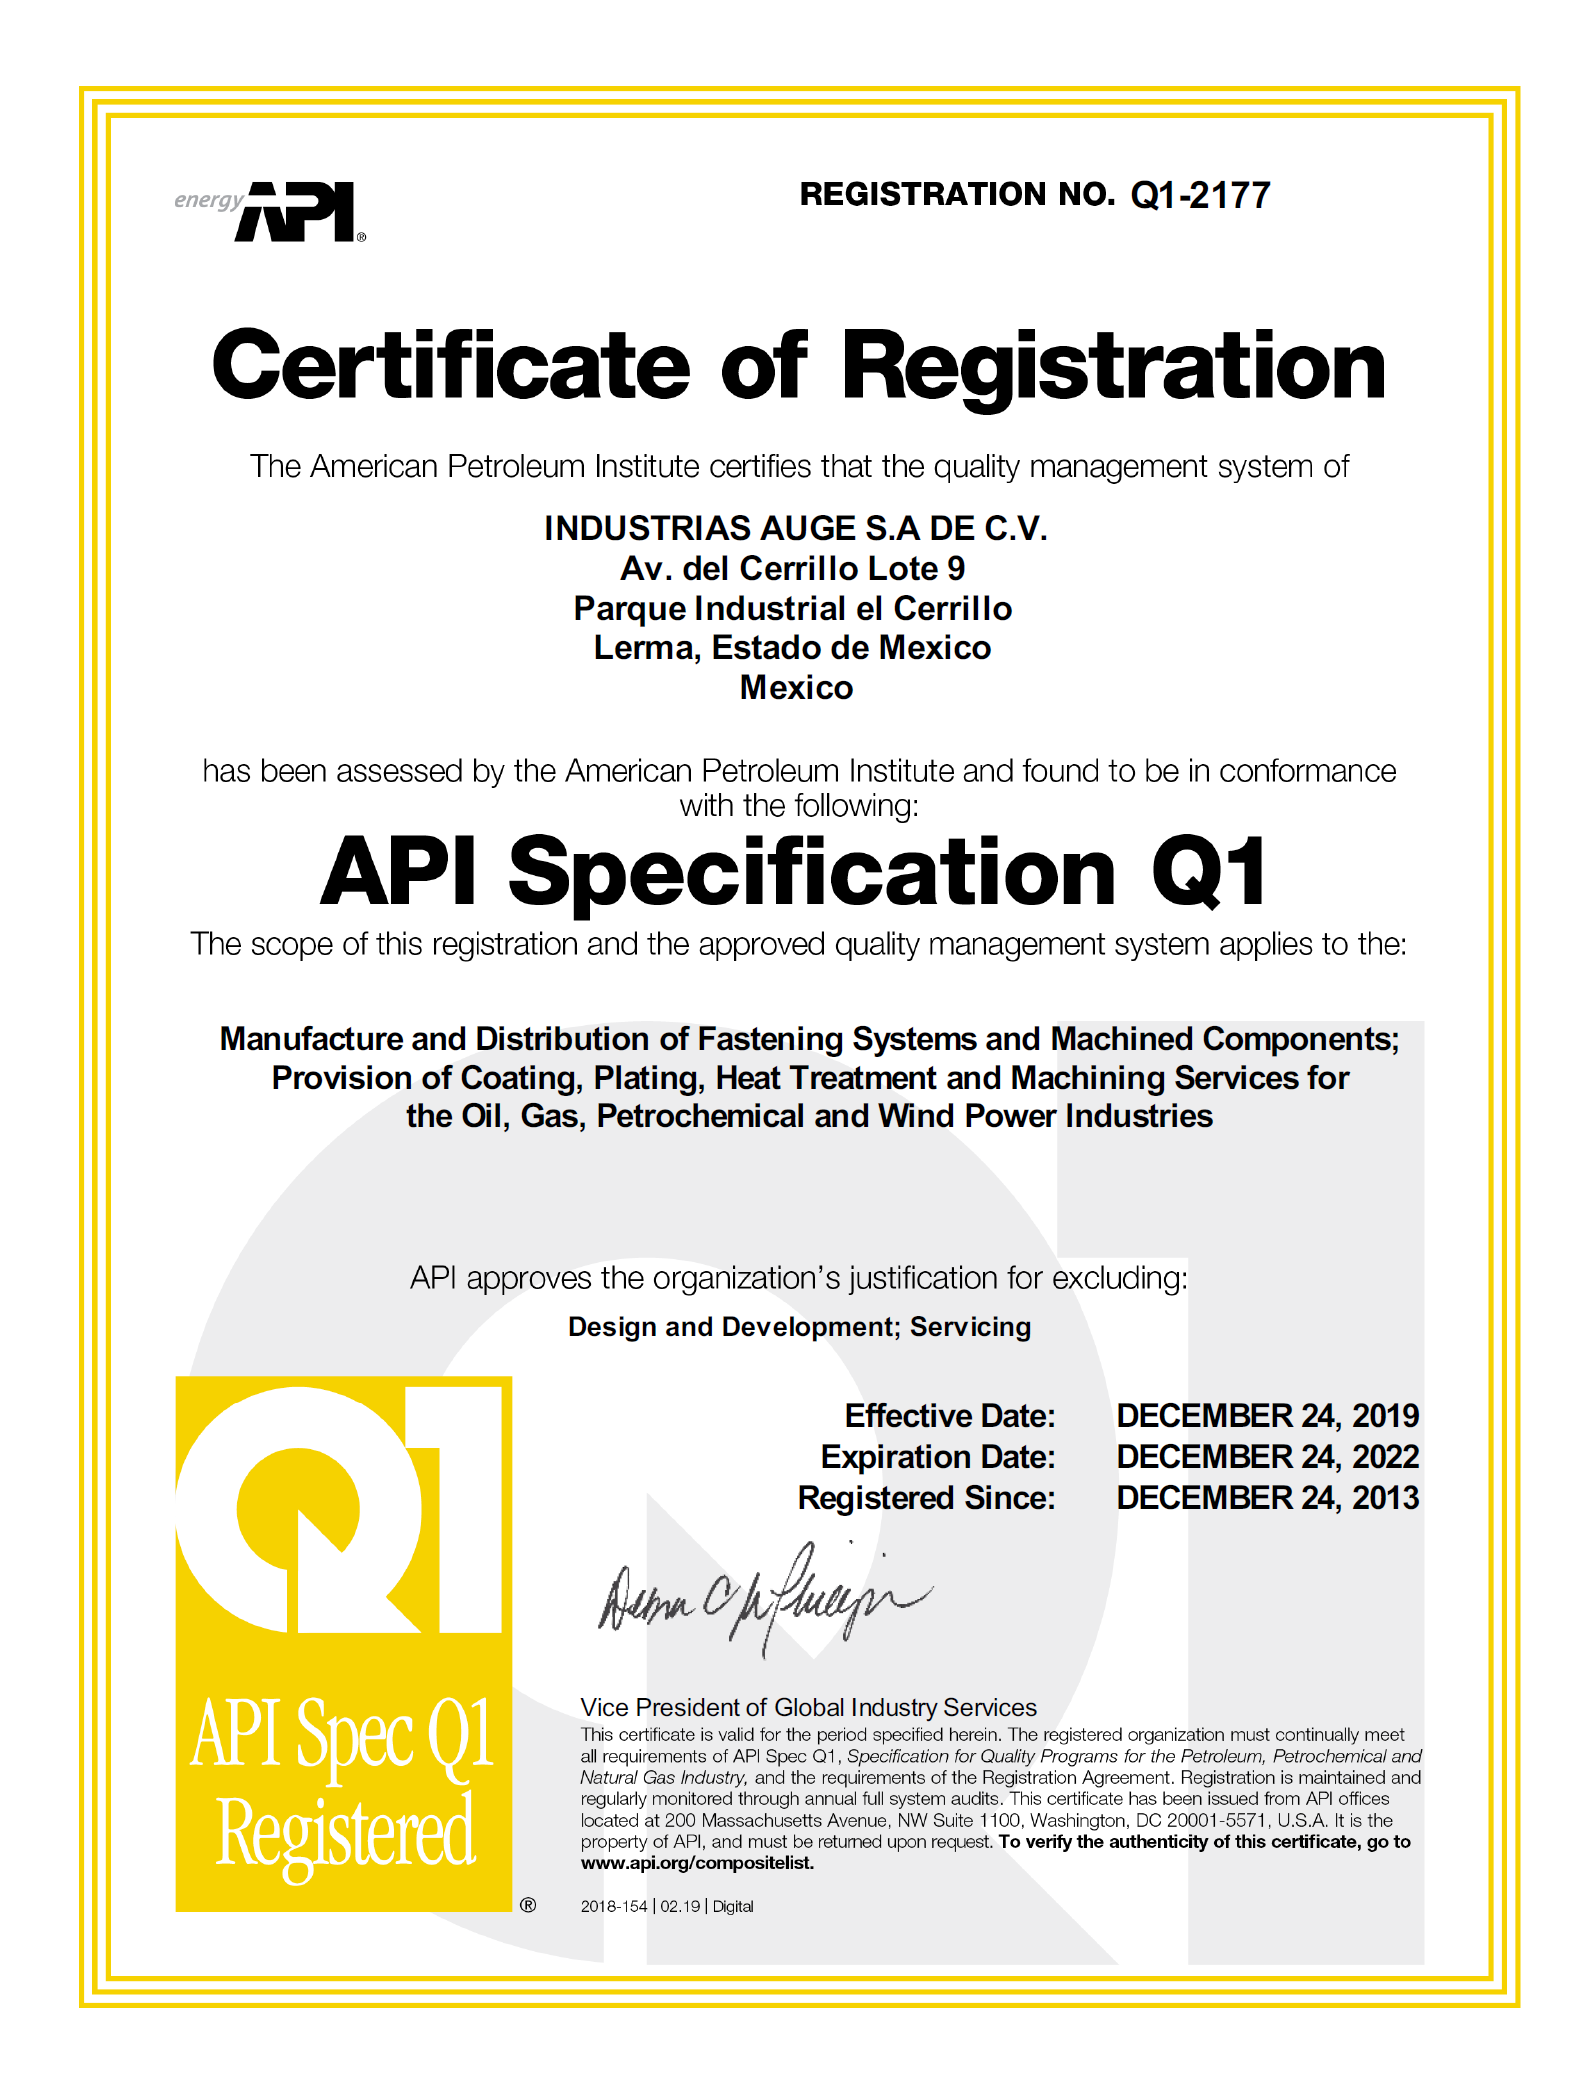 AUGE-API Q1 Certification